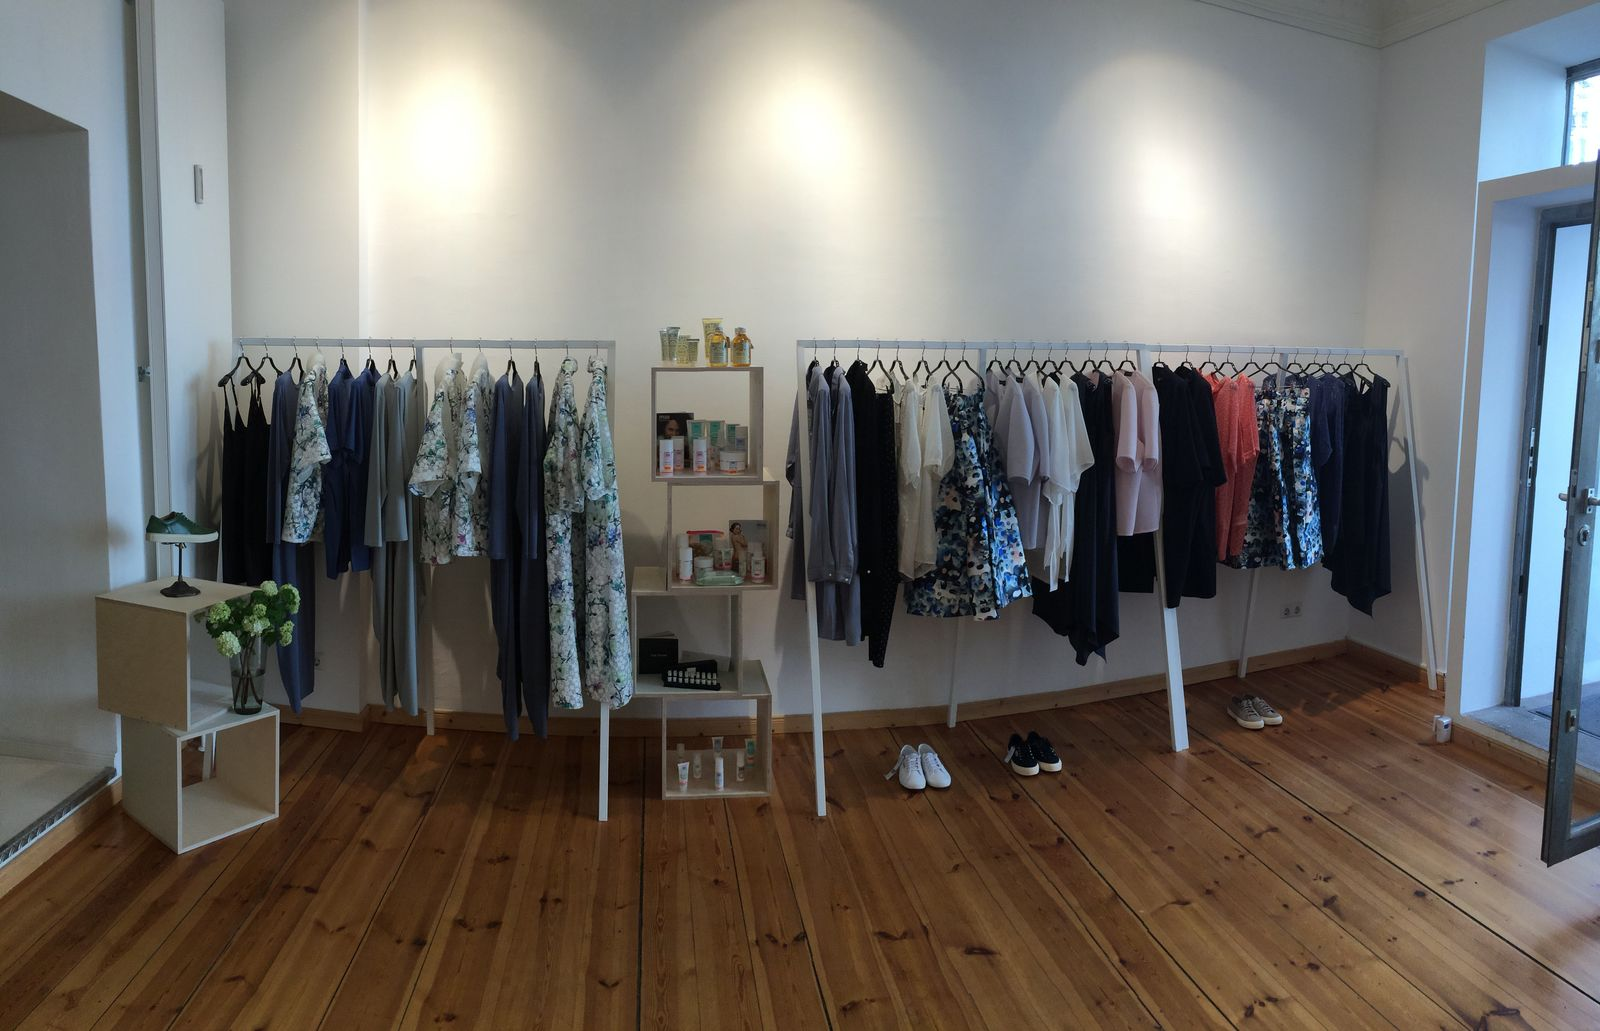 Les Soeurs Shop - The Curvy Concept Store in Berlin (Bild 4)